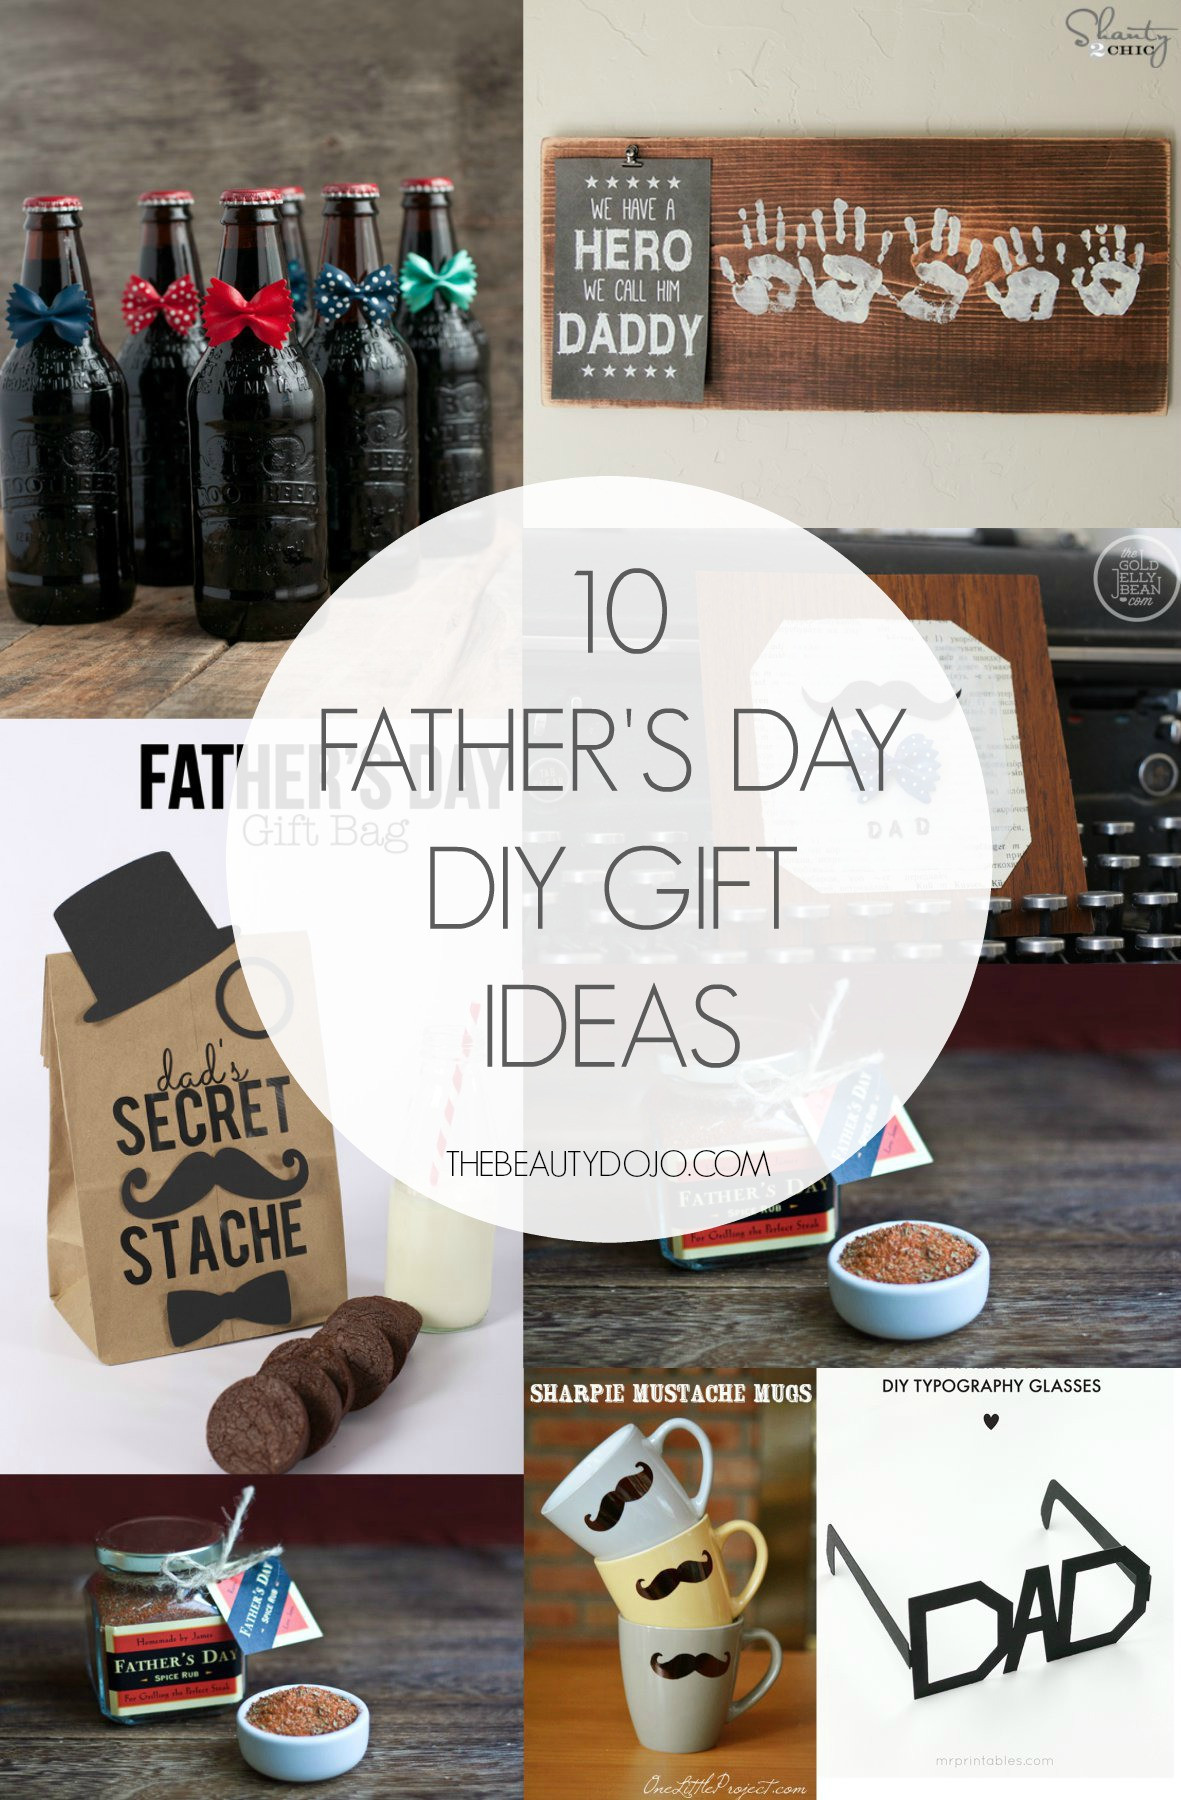 Best ideas about Fathers Day DIY Gifts . Save or Pin 10 Father s Day DIY Gift Ideas The Beautydojo Now.